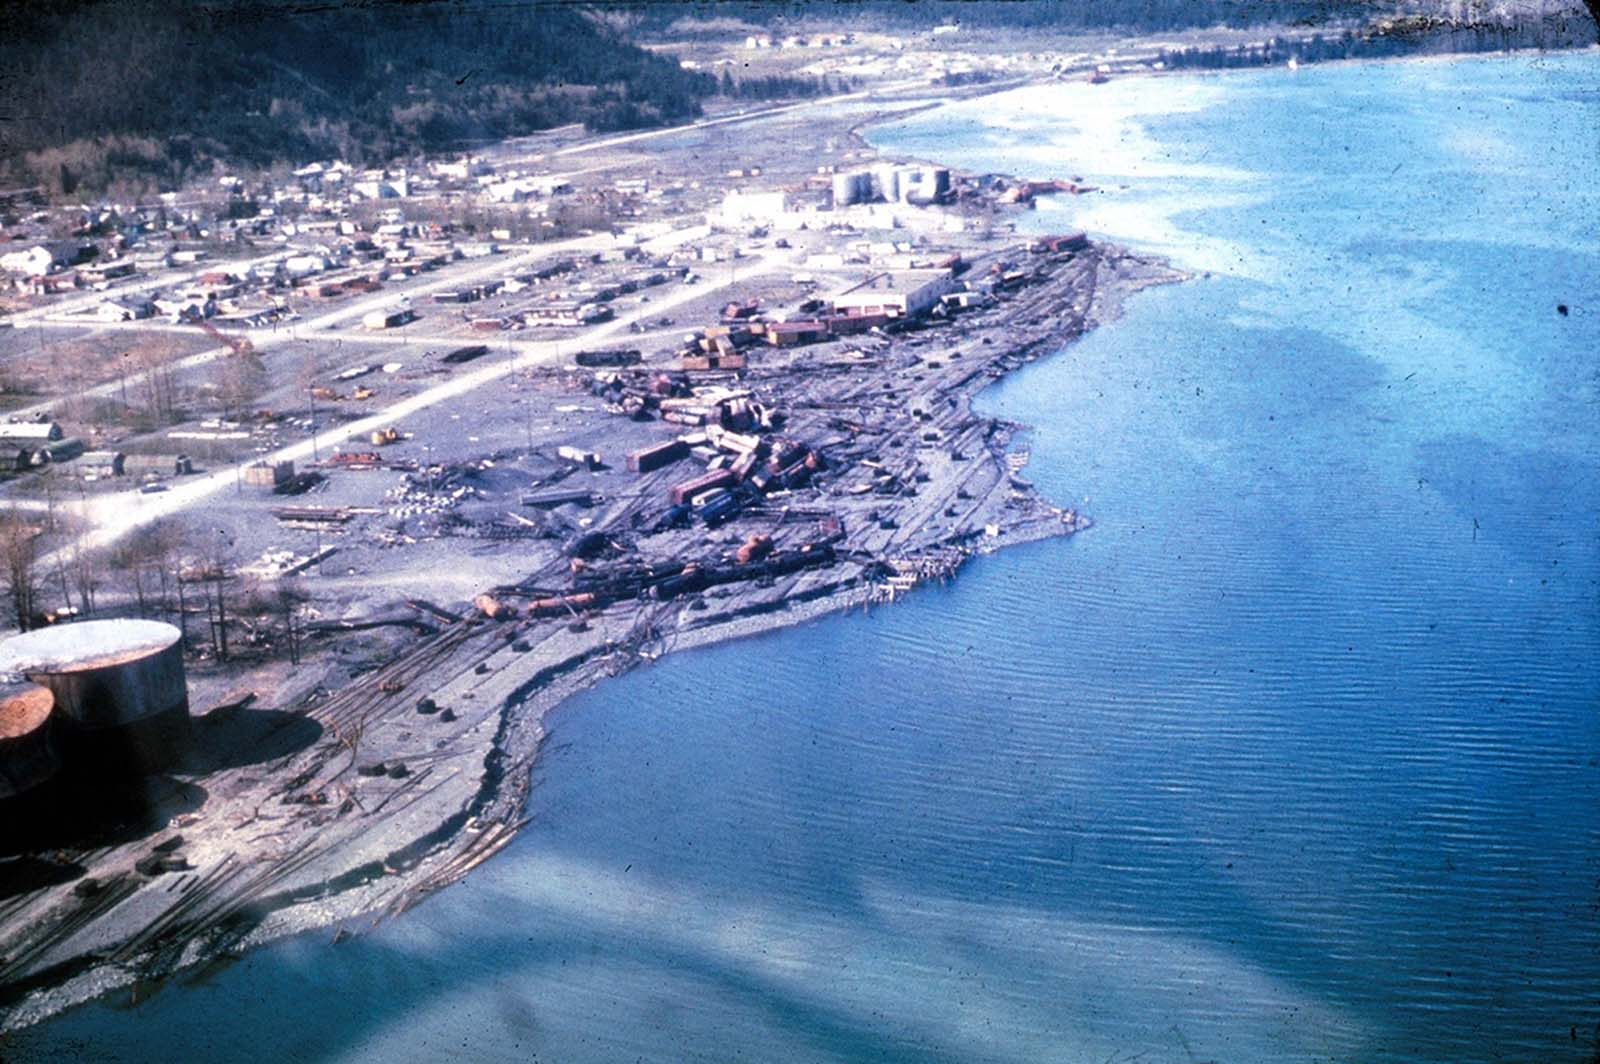 The waterfront of Seward, Alaska, weeks after the earthquake, looking north. Note the